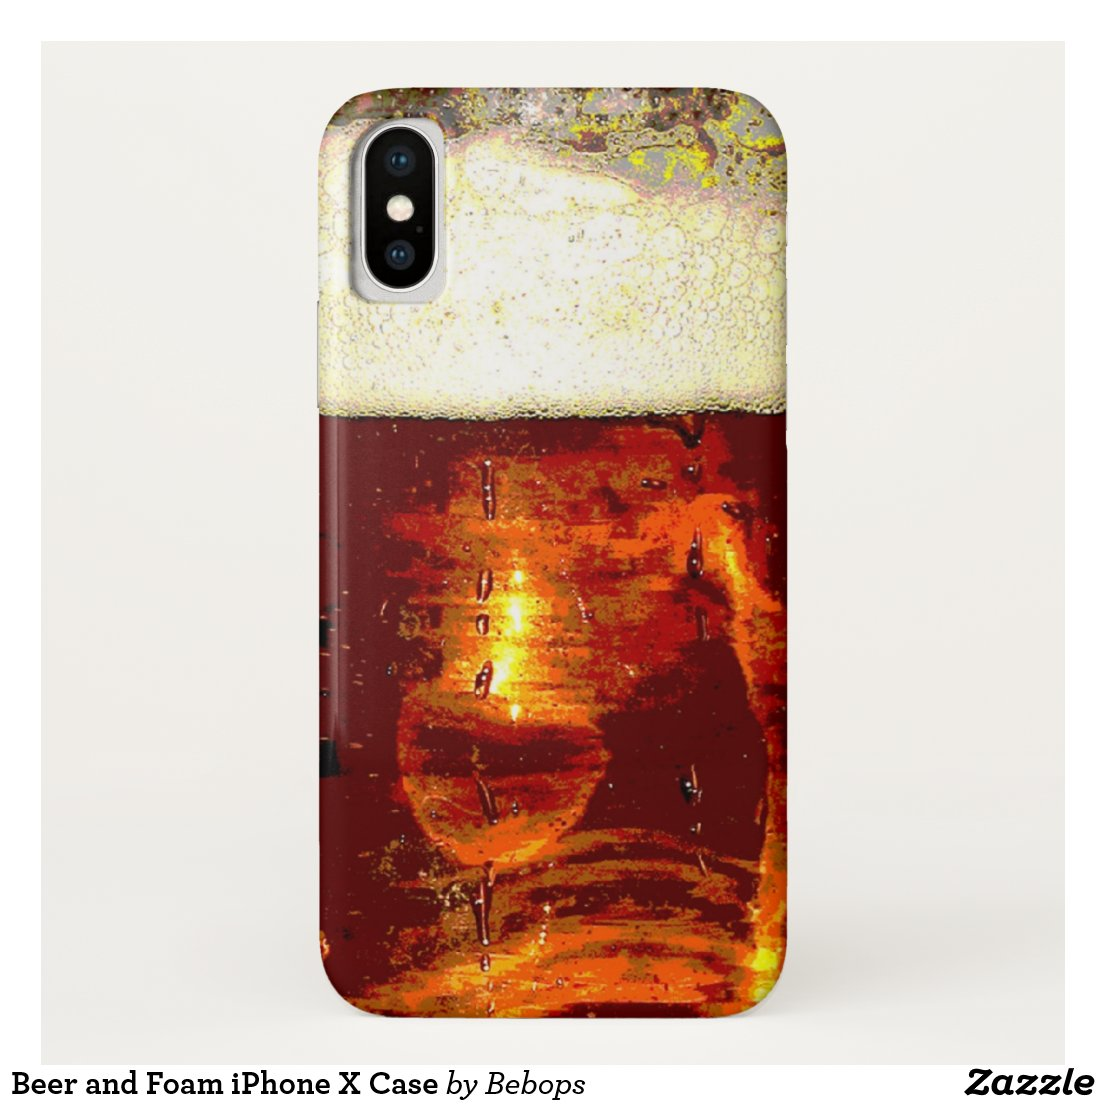 Beer and Foam iPhone X Case